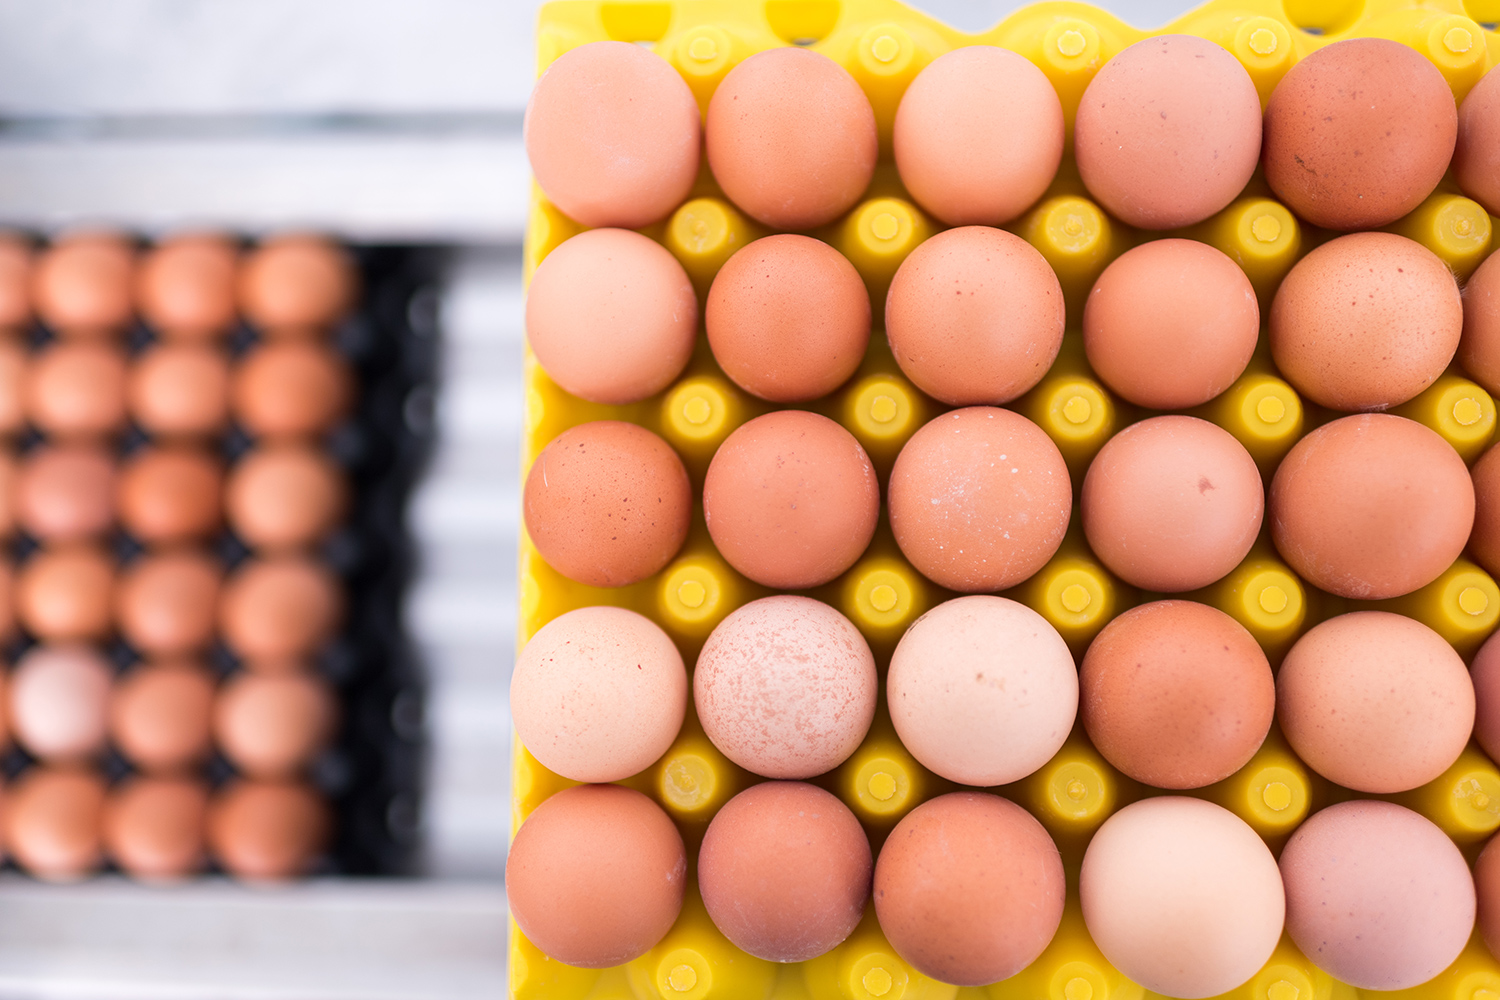 The eggs laid by the hens at the Welsh Family Farm in Iowa are shades of brown and tan, with a speckled one here and there.